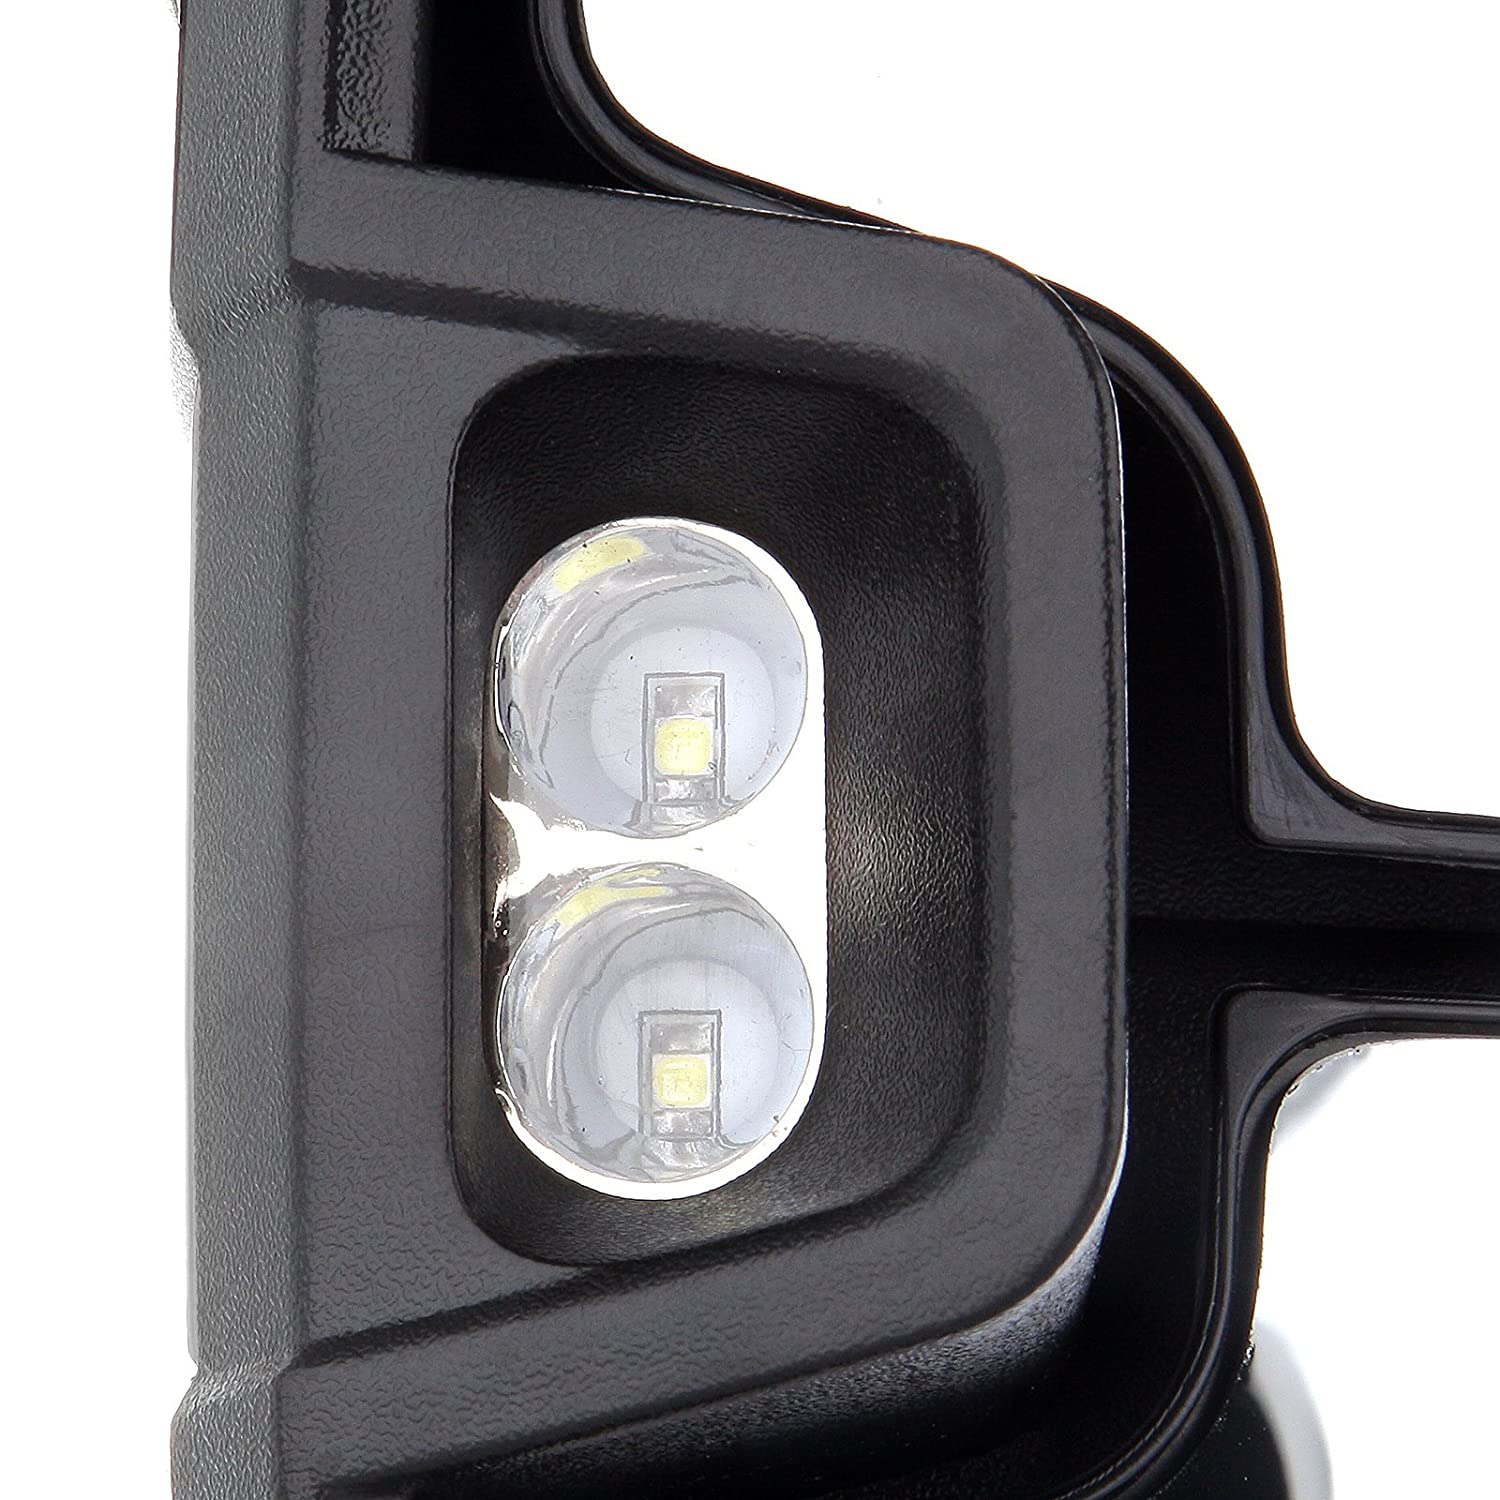 amazon scitoo tow mirrors fit 2007 2014 chevy gmc towing door Replacement Mirror for Chevy Silverado amazon scitoo tow mirrors fit 2007 2014 chevy gmc towing door side mirrors power heated led smoke signal l s pair pair towing mirrors automotive